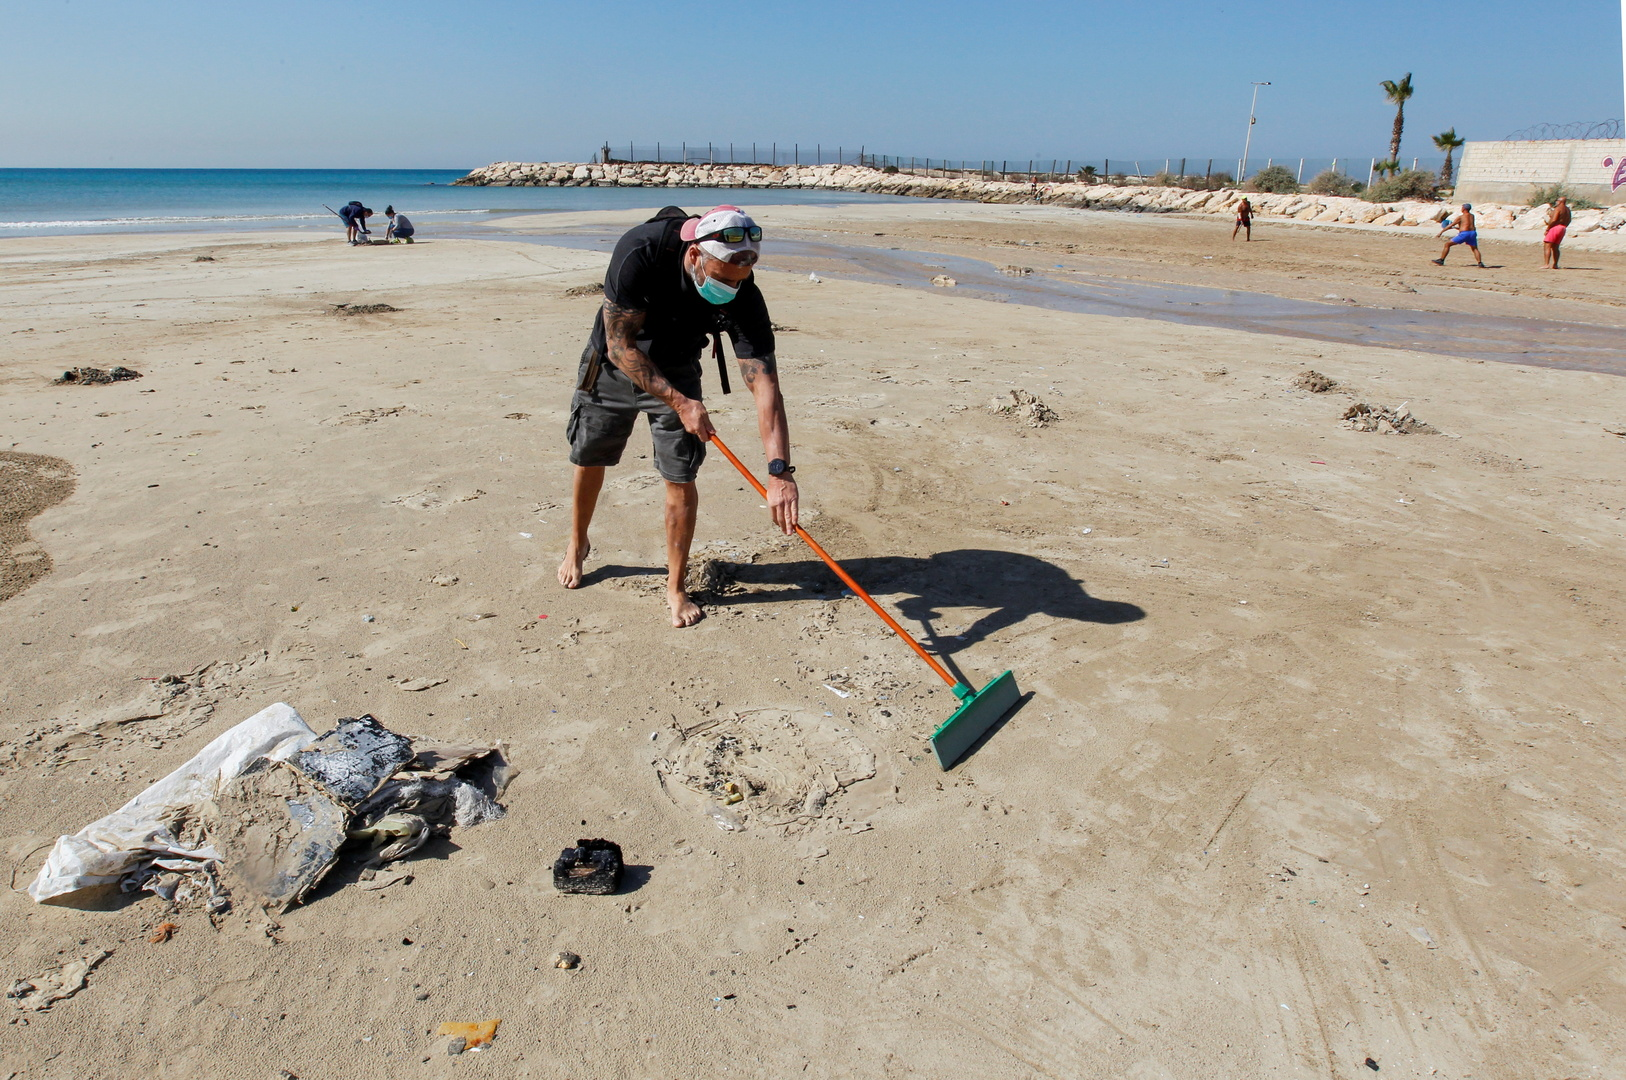 Lebanese MP: The amount of tar that spread on the beaches coming from Israel is estimated at 2 tons